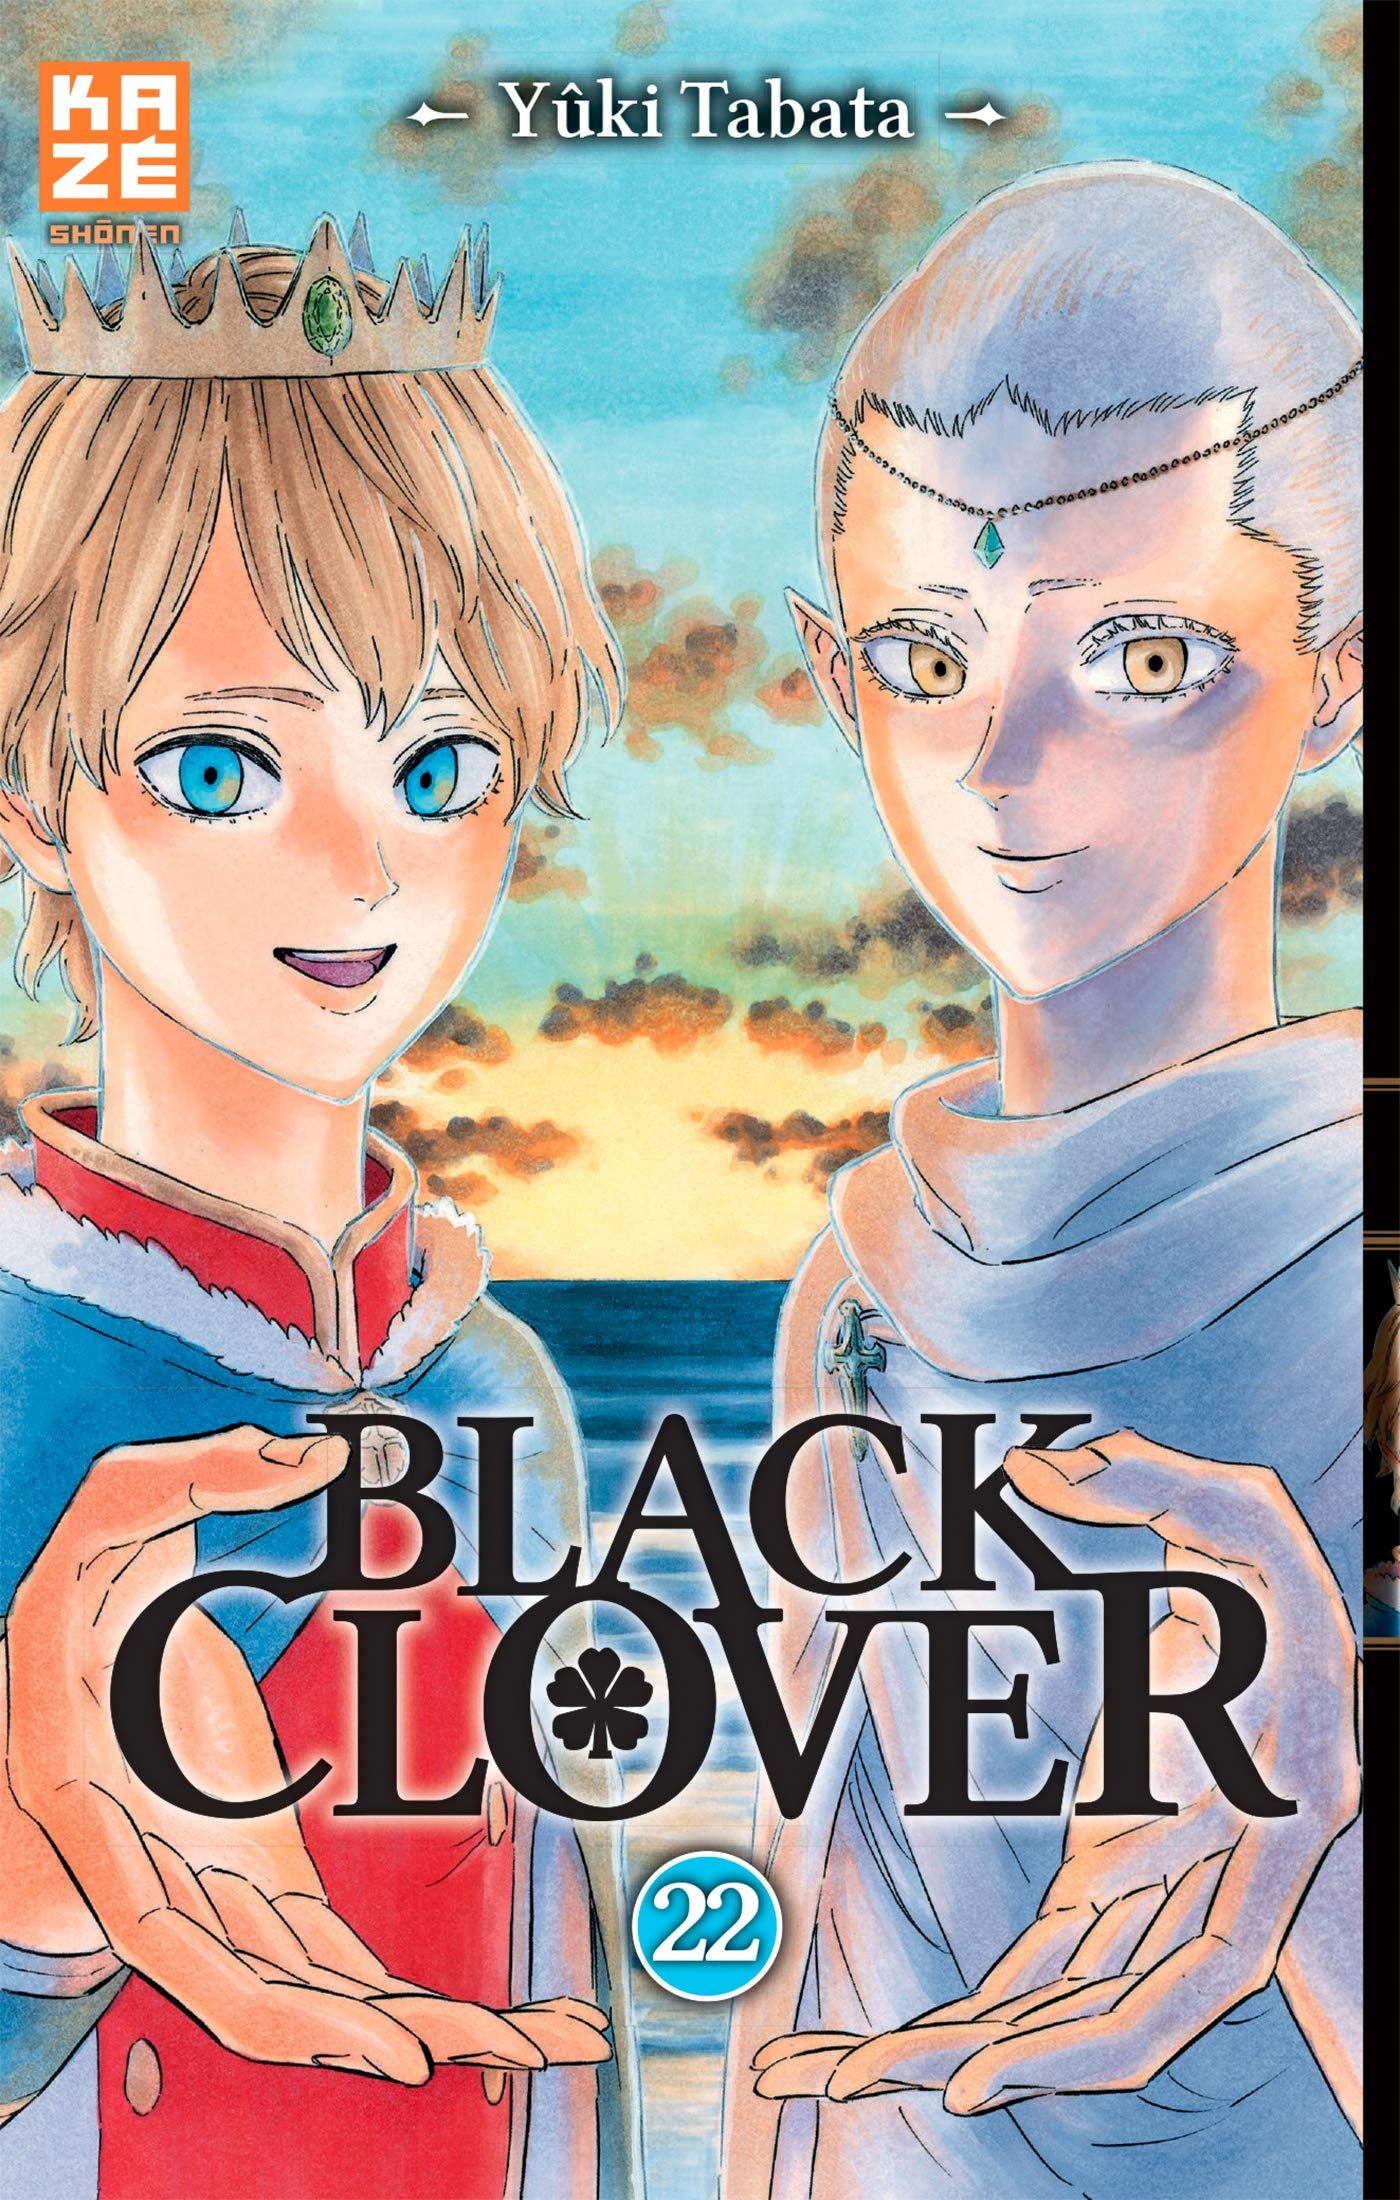 Un arc filler de Black Clover débutera le 14 avril 2020